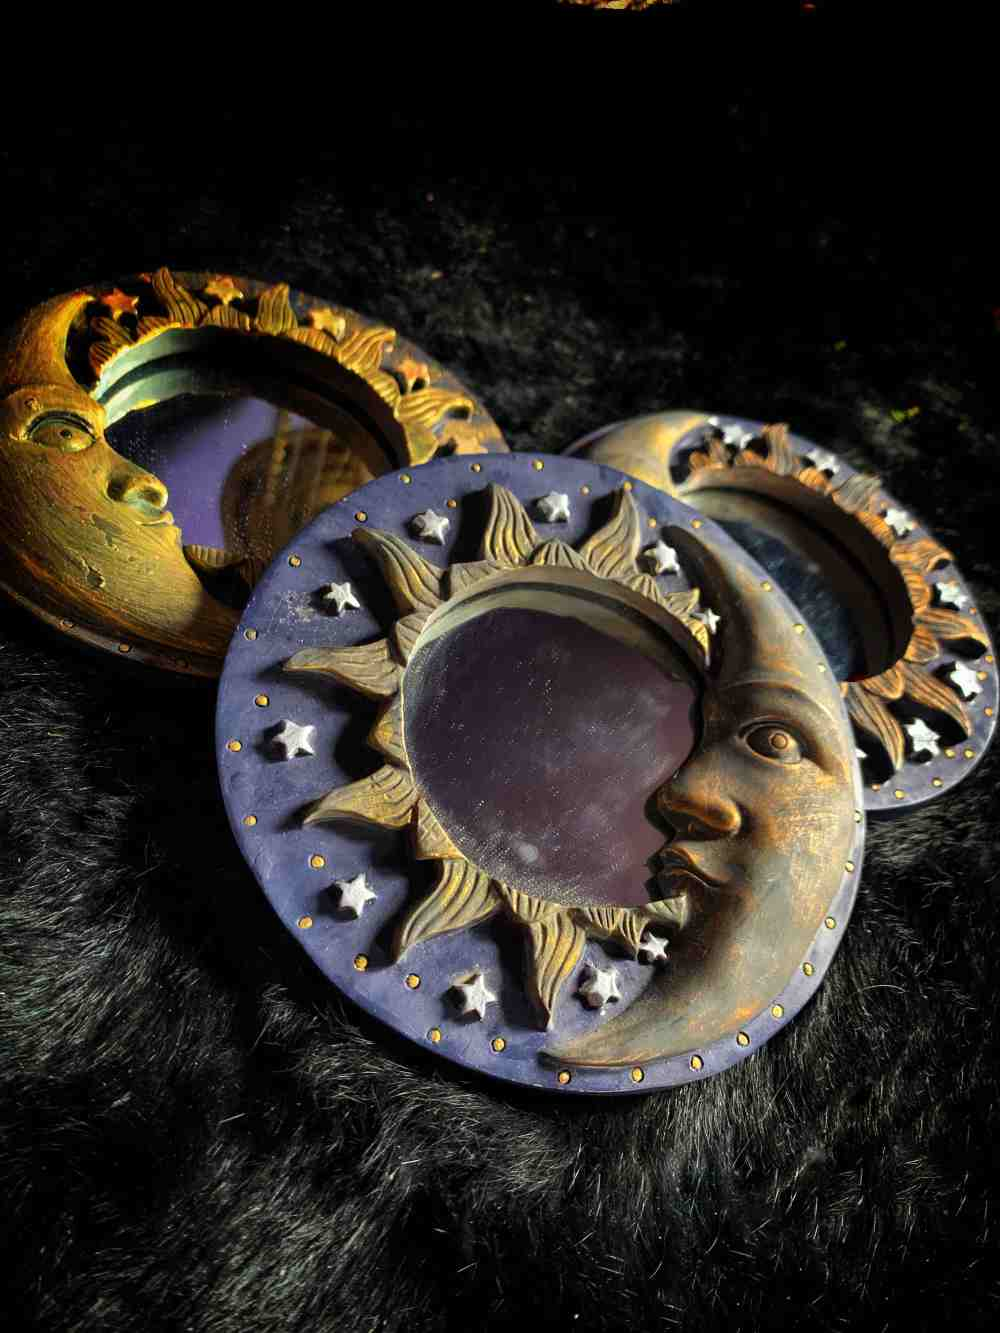 Moon Scrying Mirror Vintage